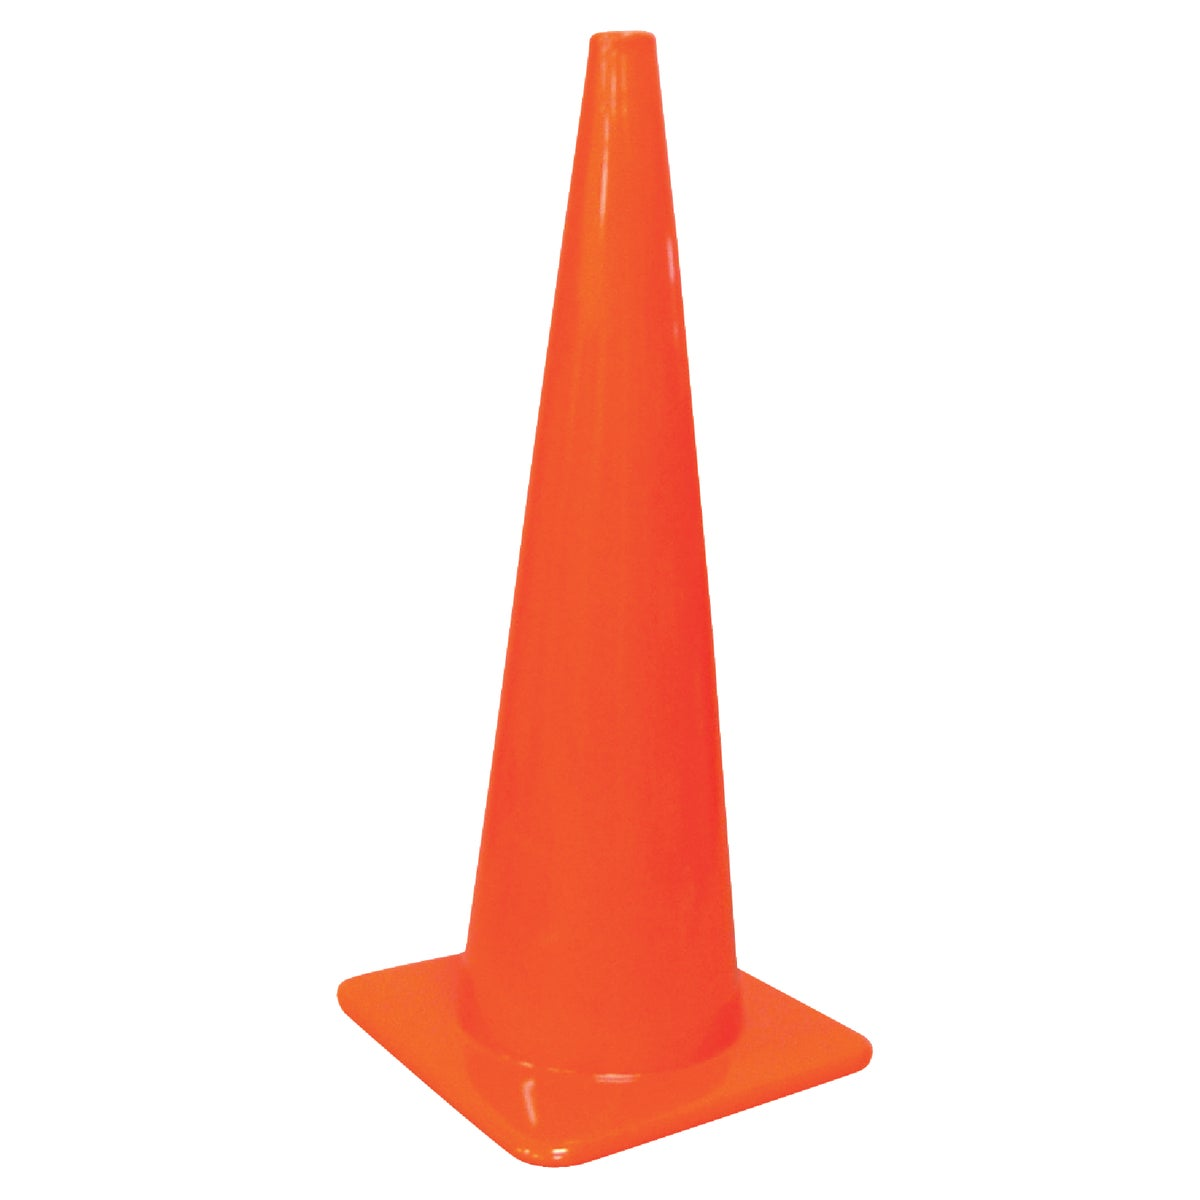 36X15 SAFETY CONE - SC-36 by Hy Ko Prods Co